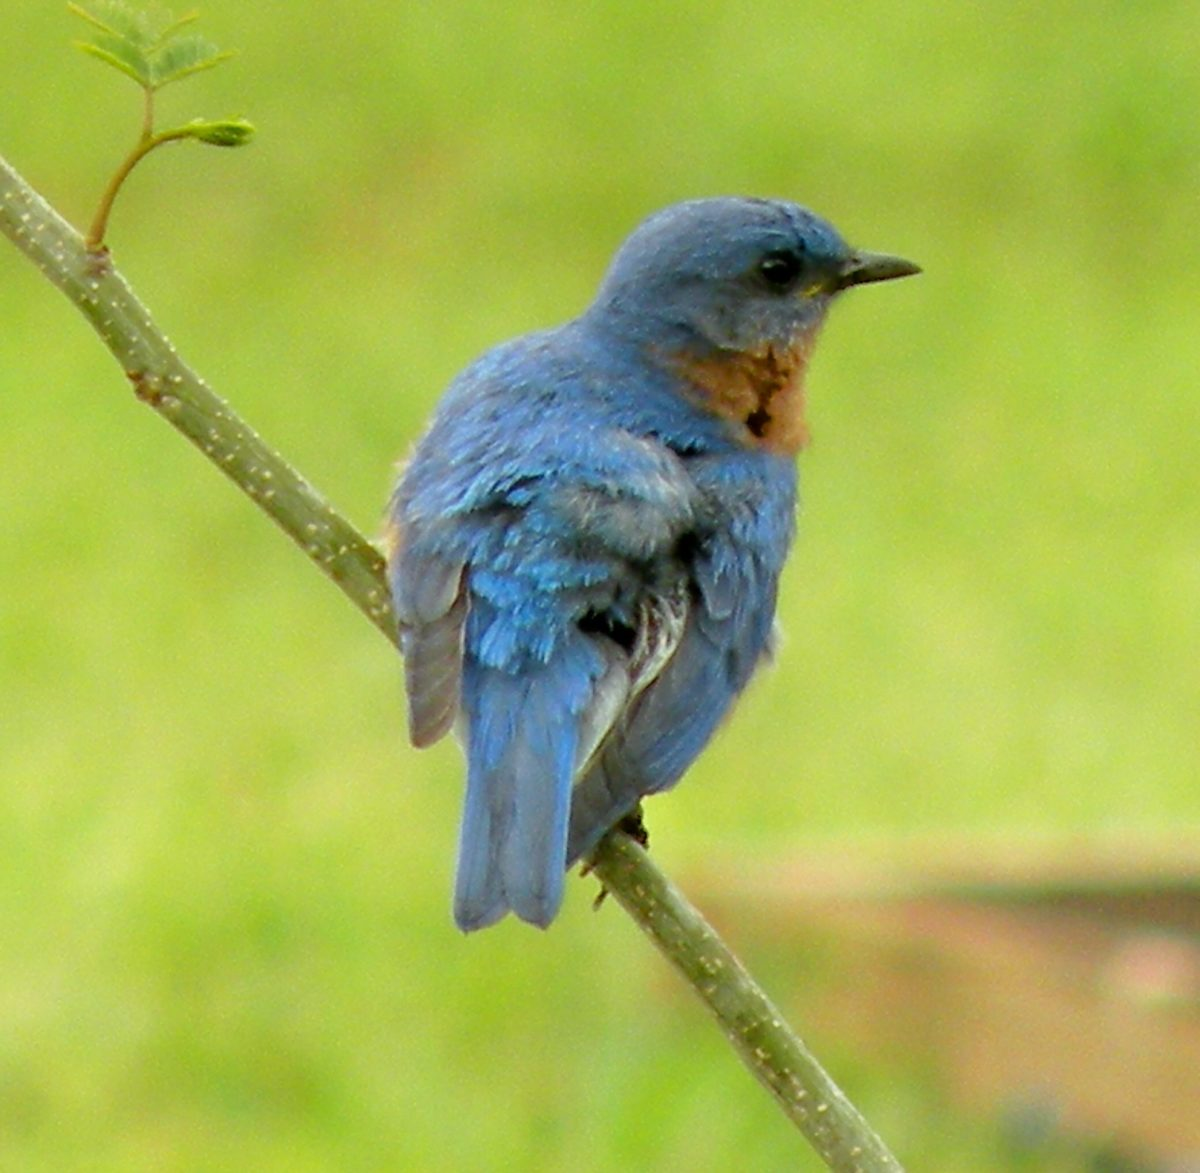 The male bluebird guards his territory from a nearby branch.